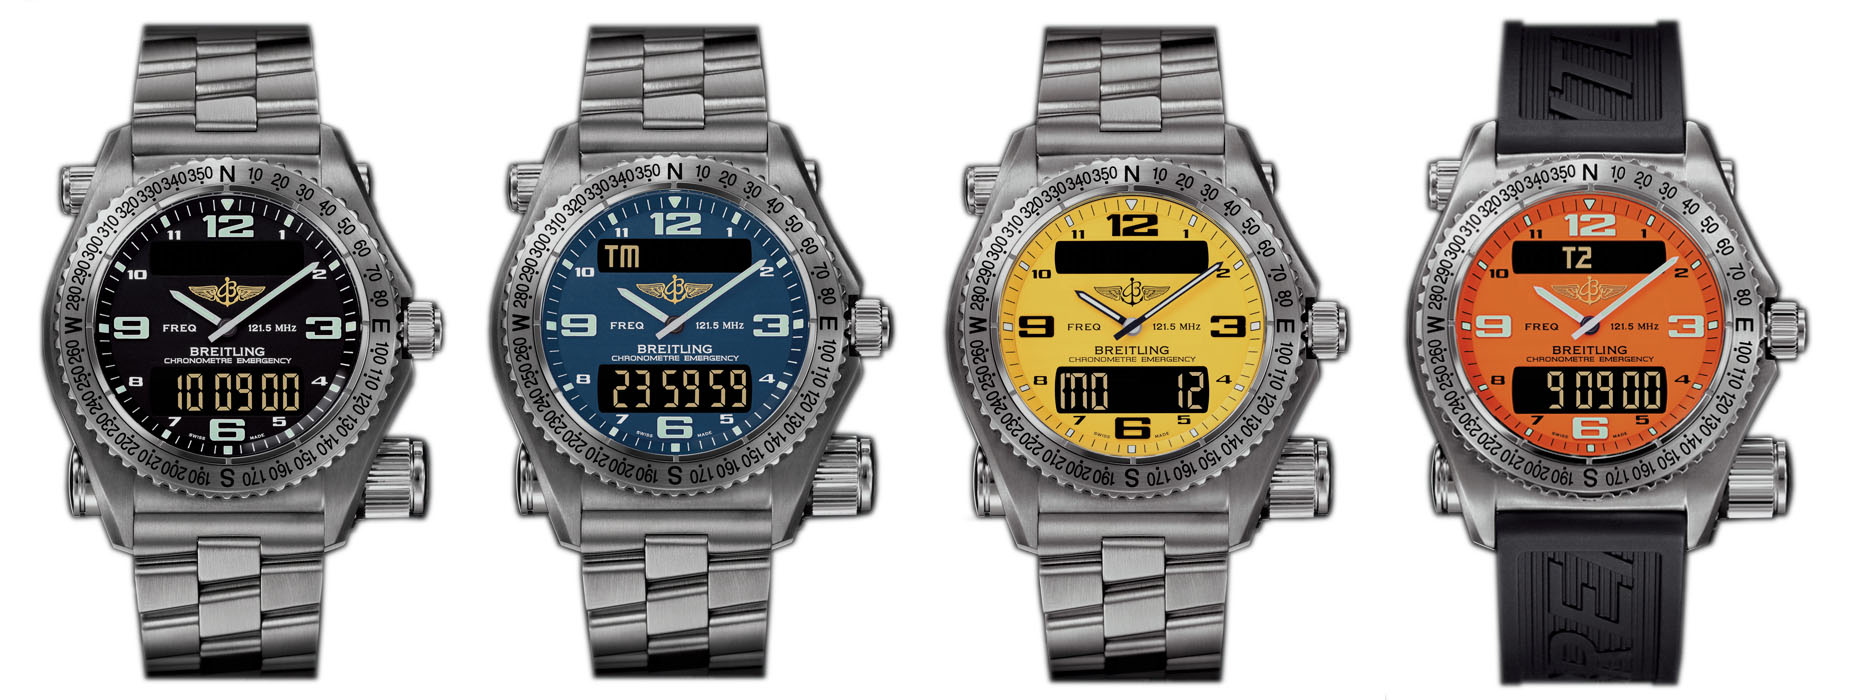 breitling-professional-emergency-watches